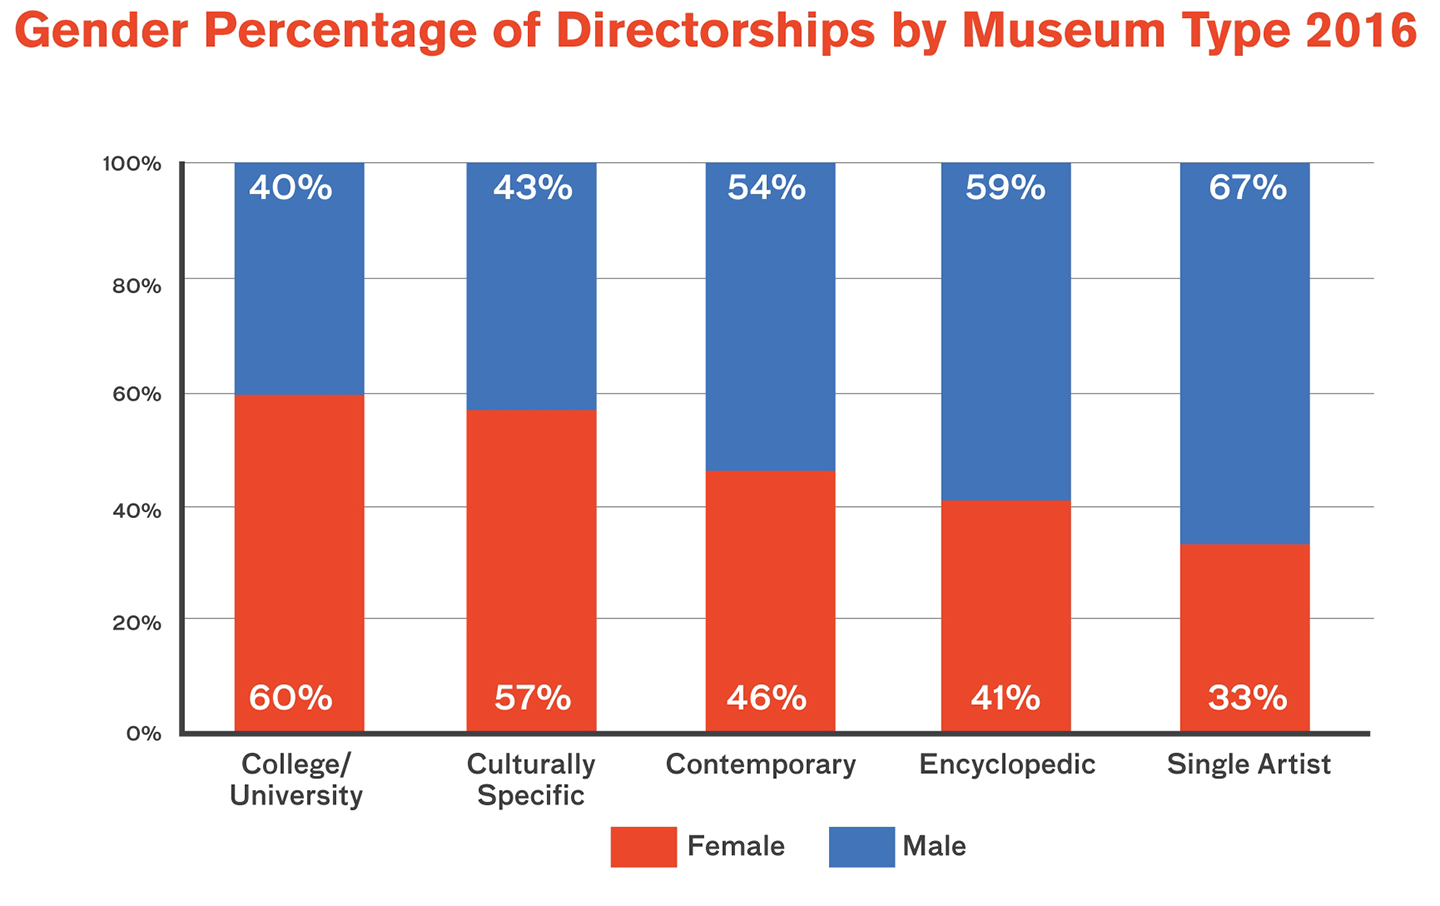 A graphic detailing statistics of the ongoing gender gap in art museum directorships, published by the Association of Art Museum Directors, which shows that men hold most of the positions in contemporary, encyclopedic, and single artist museums, while women hold the majority of positions in college/university and culturally specific museums.